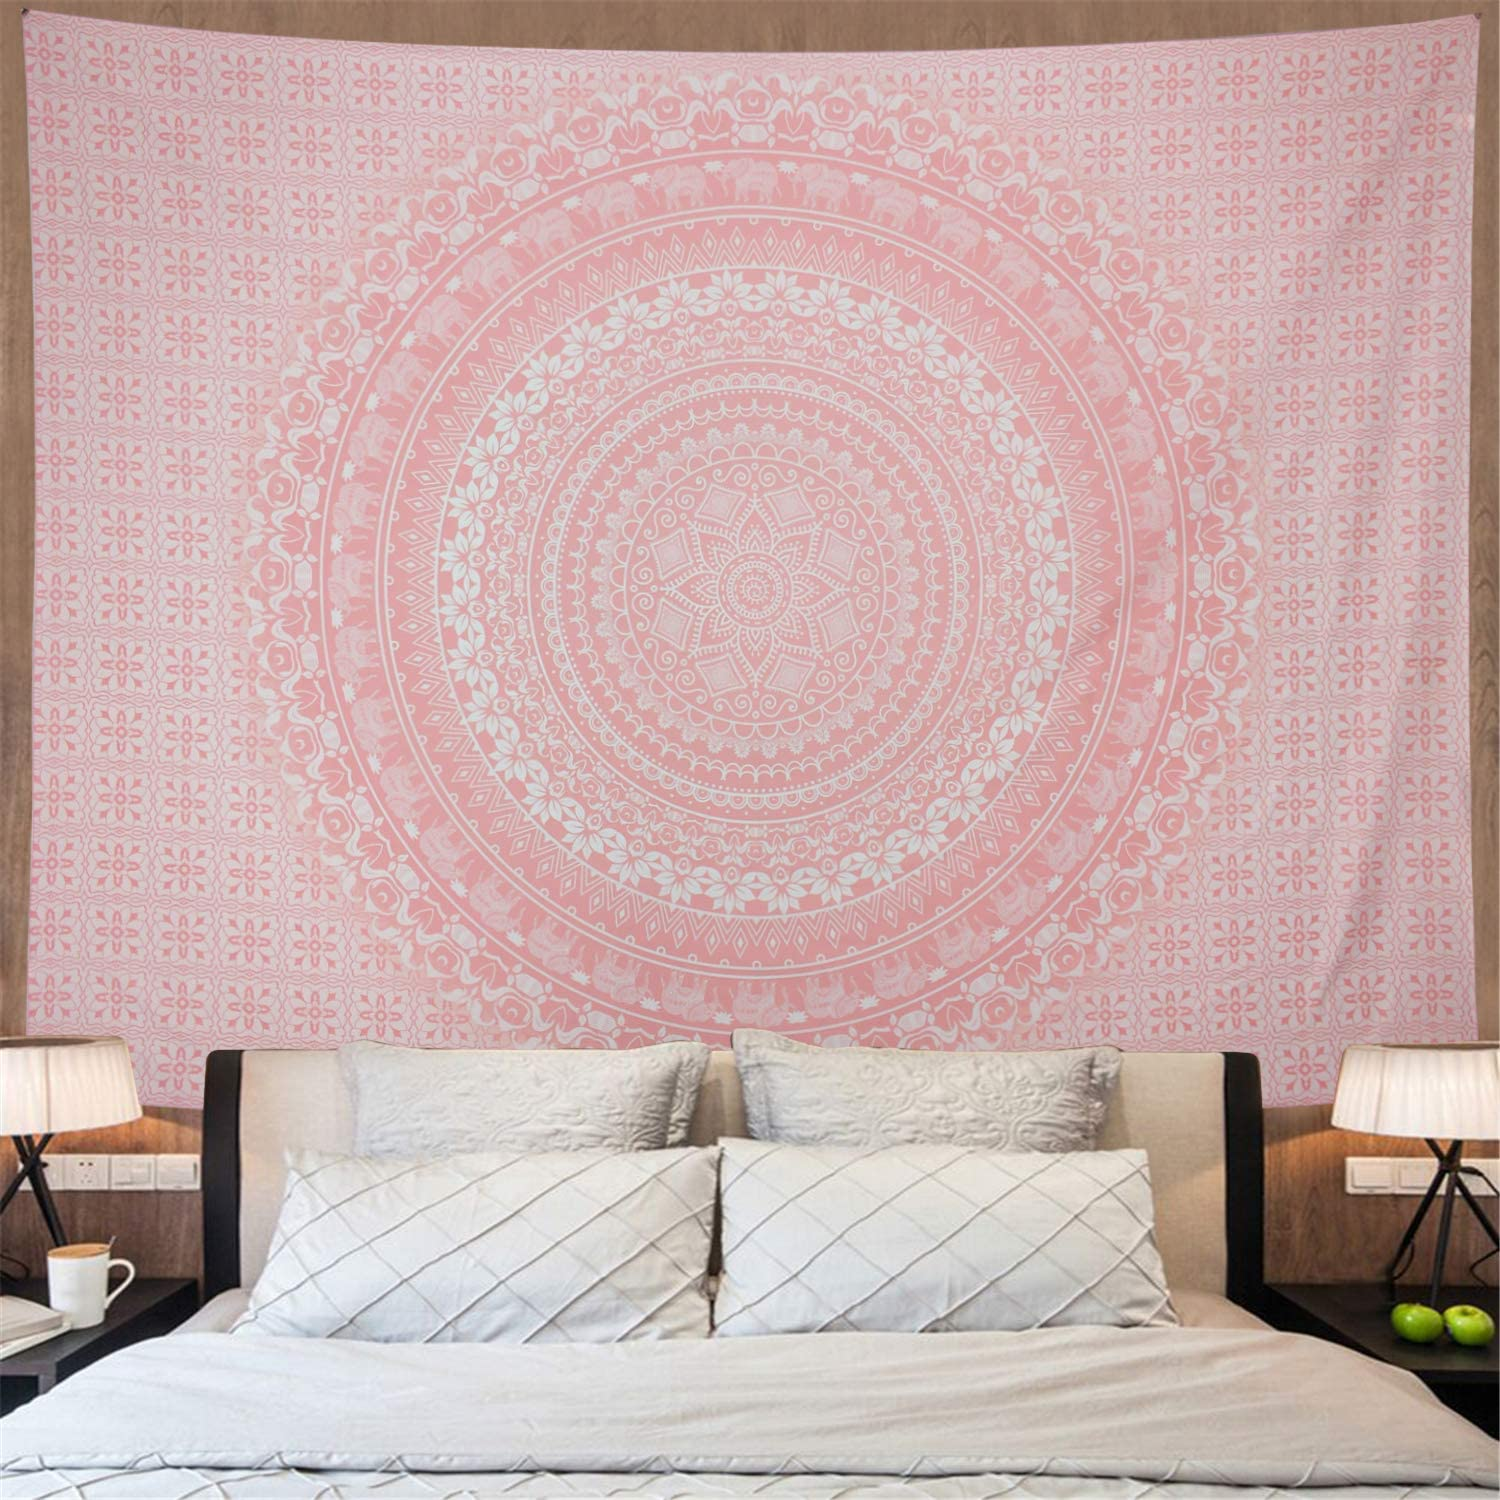 Amazon Com Amonercvita Tapestries Rose Gold Tapestry Pink Tapestry Wall Hanging Ombre Hippie Wall Tapestry Psychedelic Mandala Bohemian Tapestry Large Boho Tapestries For Bedroom Dorm Decor Everything Else